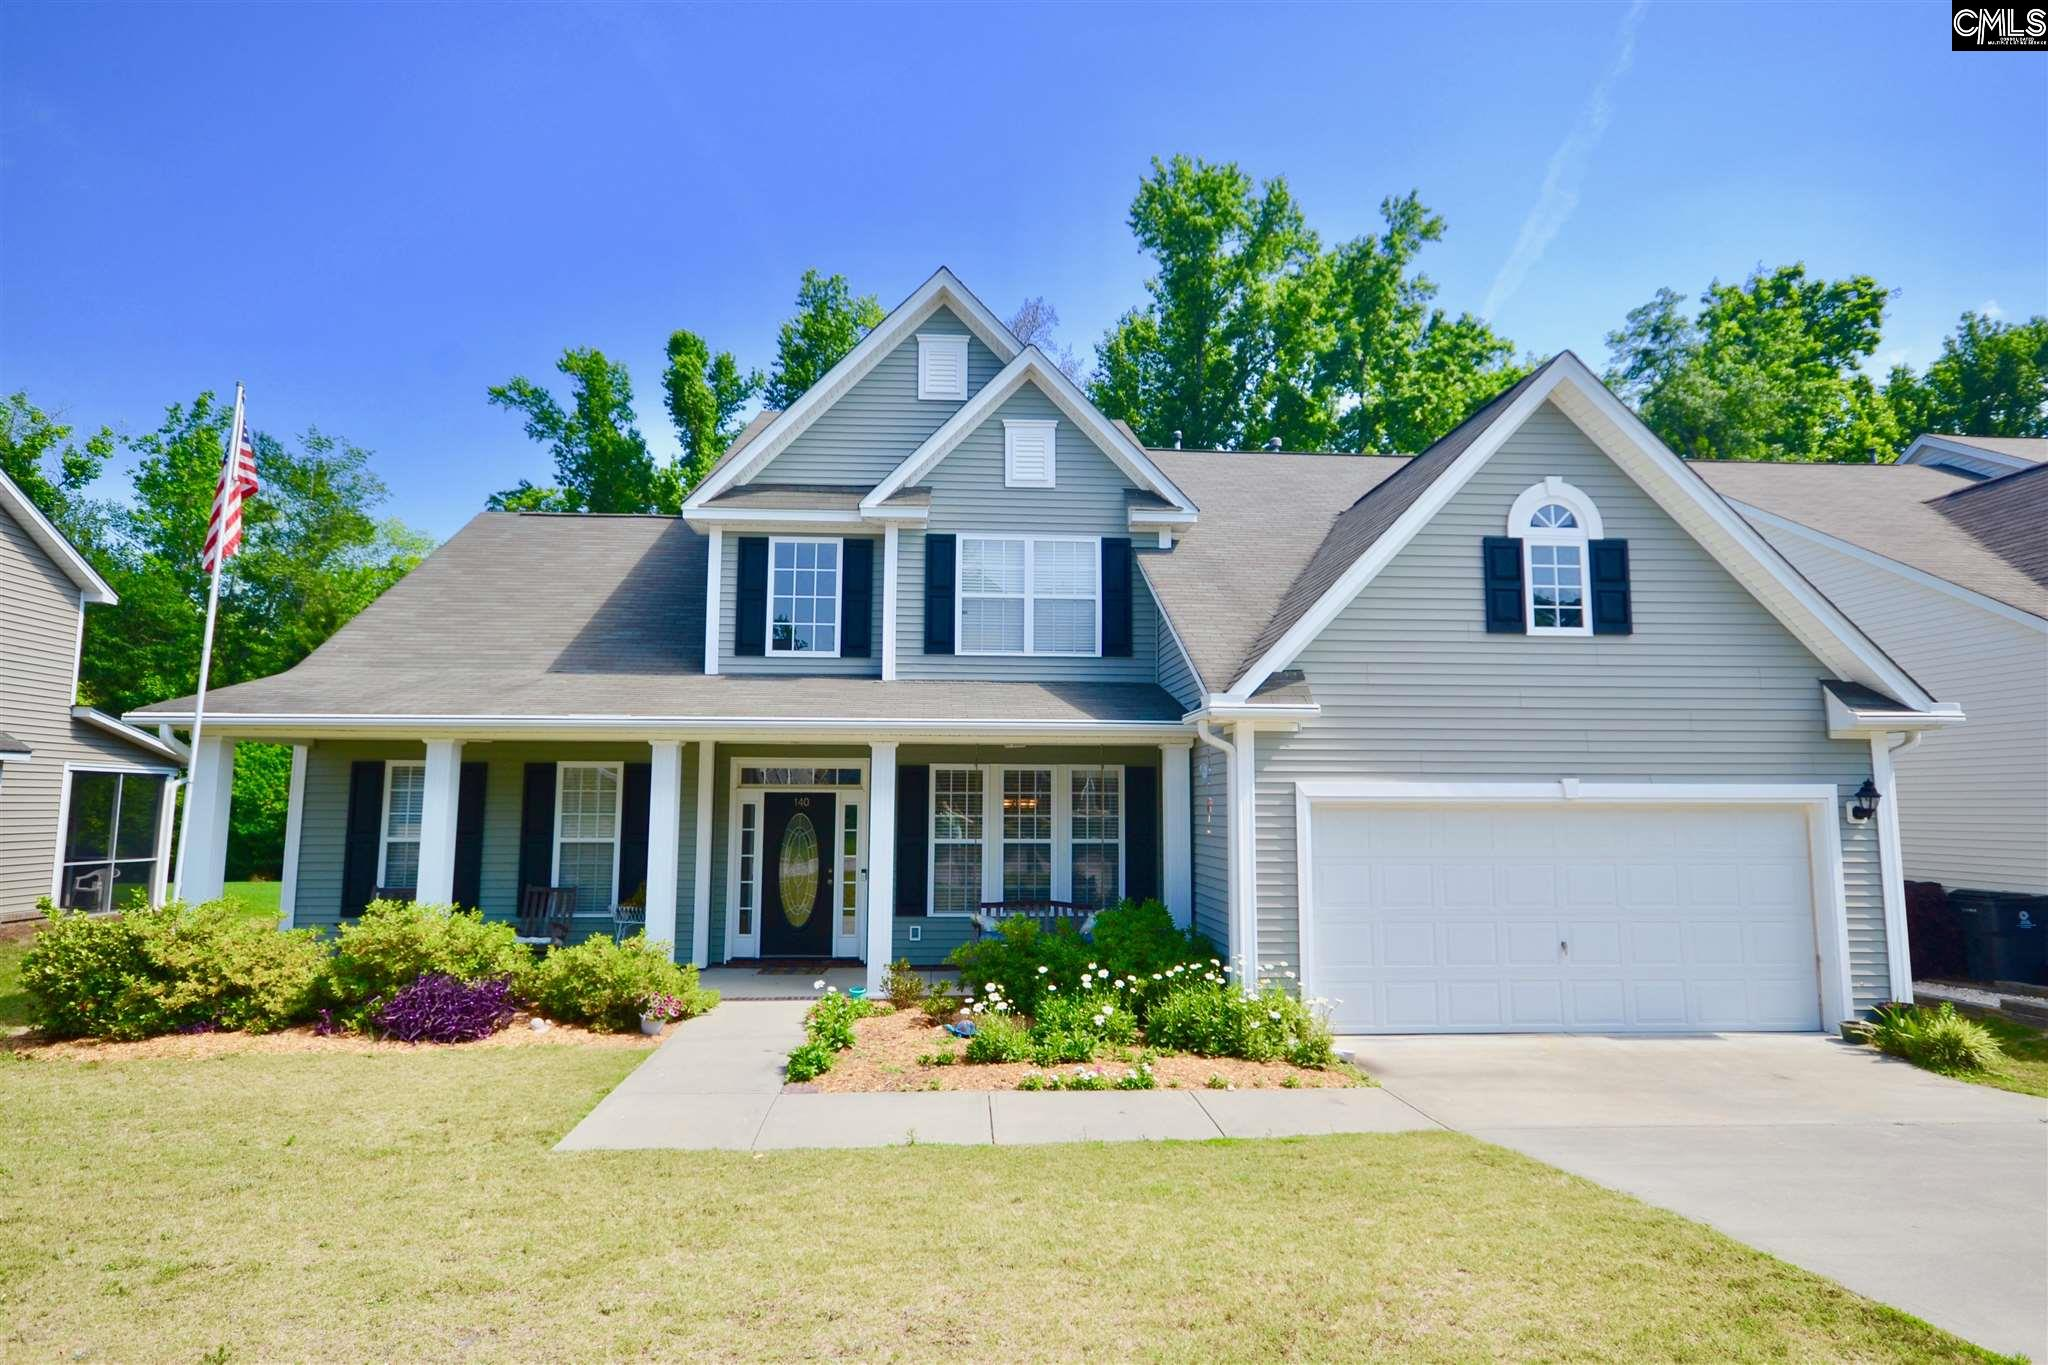 140 Millhouse Lexington, SC 29072